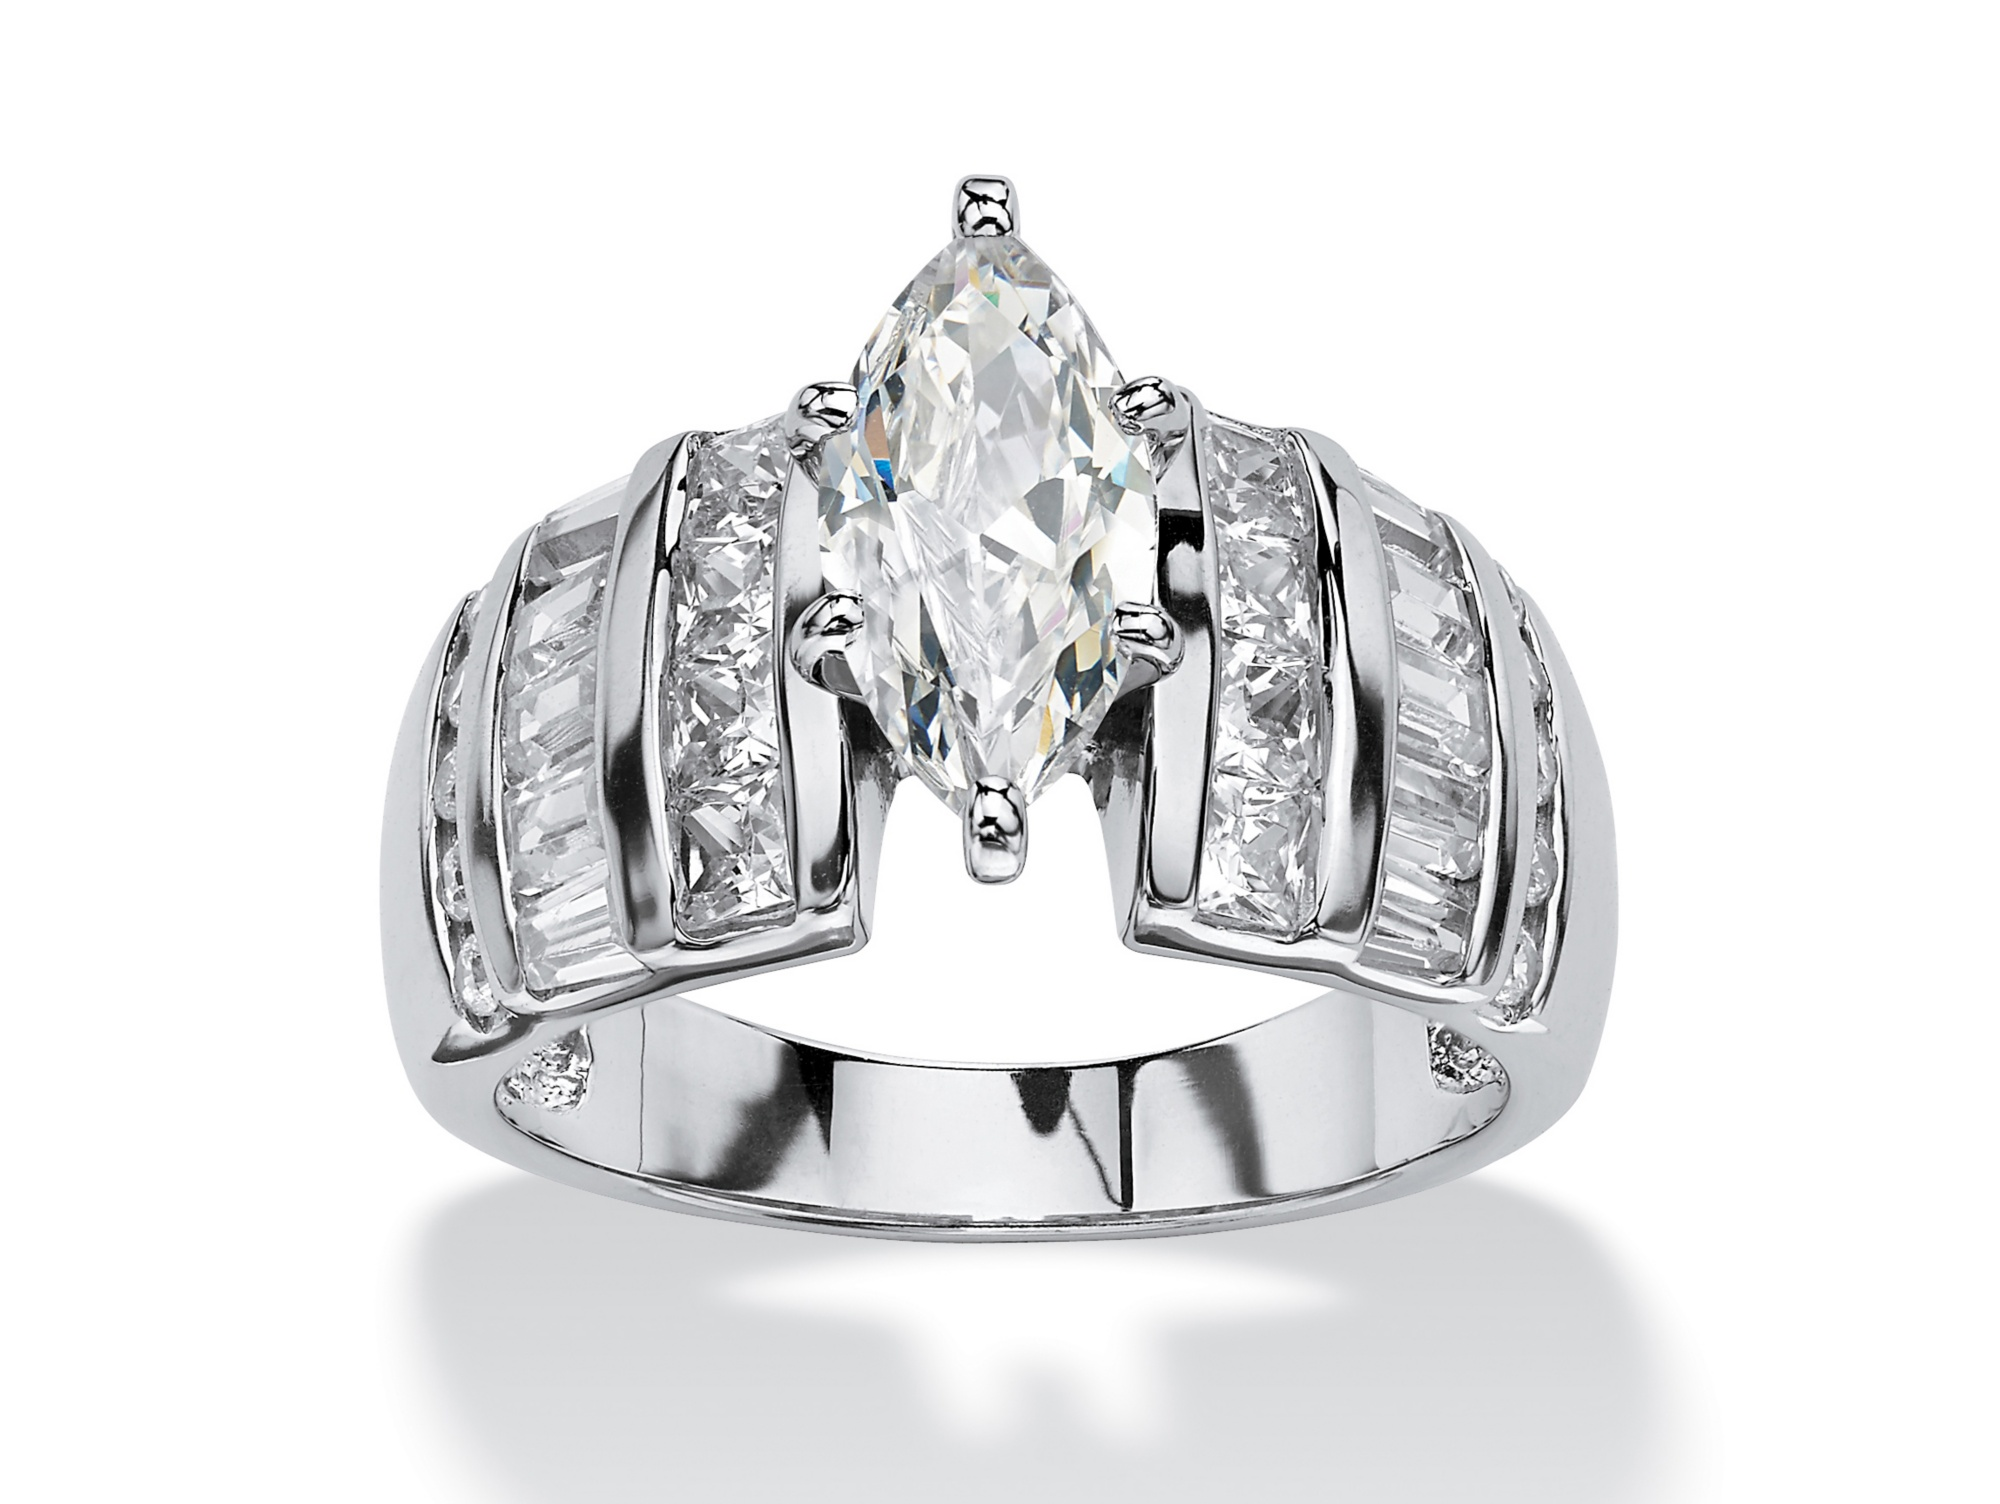 3.87 TCW Marquise-Cut Cubic Zirconia Engagement Anniversary Ring in Platinum over Sterling Silver by PalmBeach Jewelry